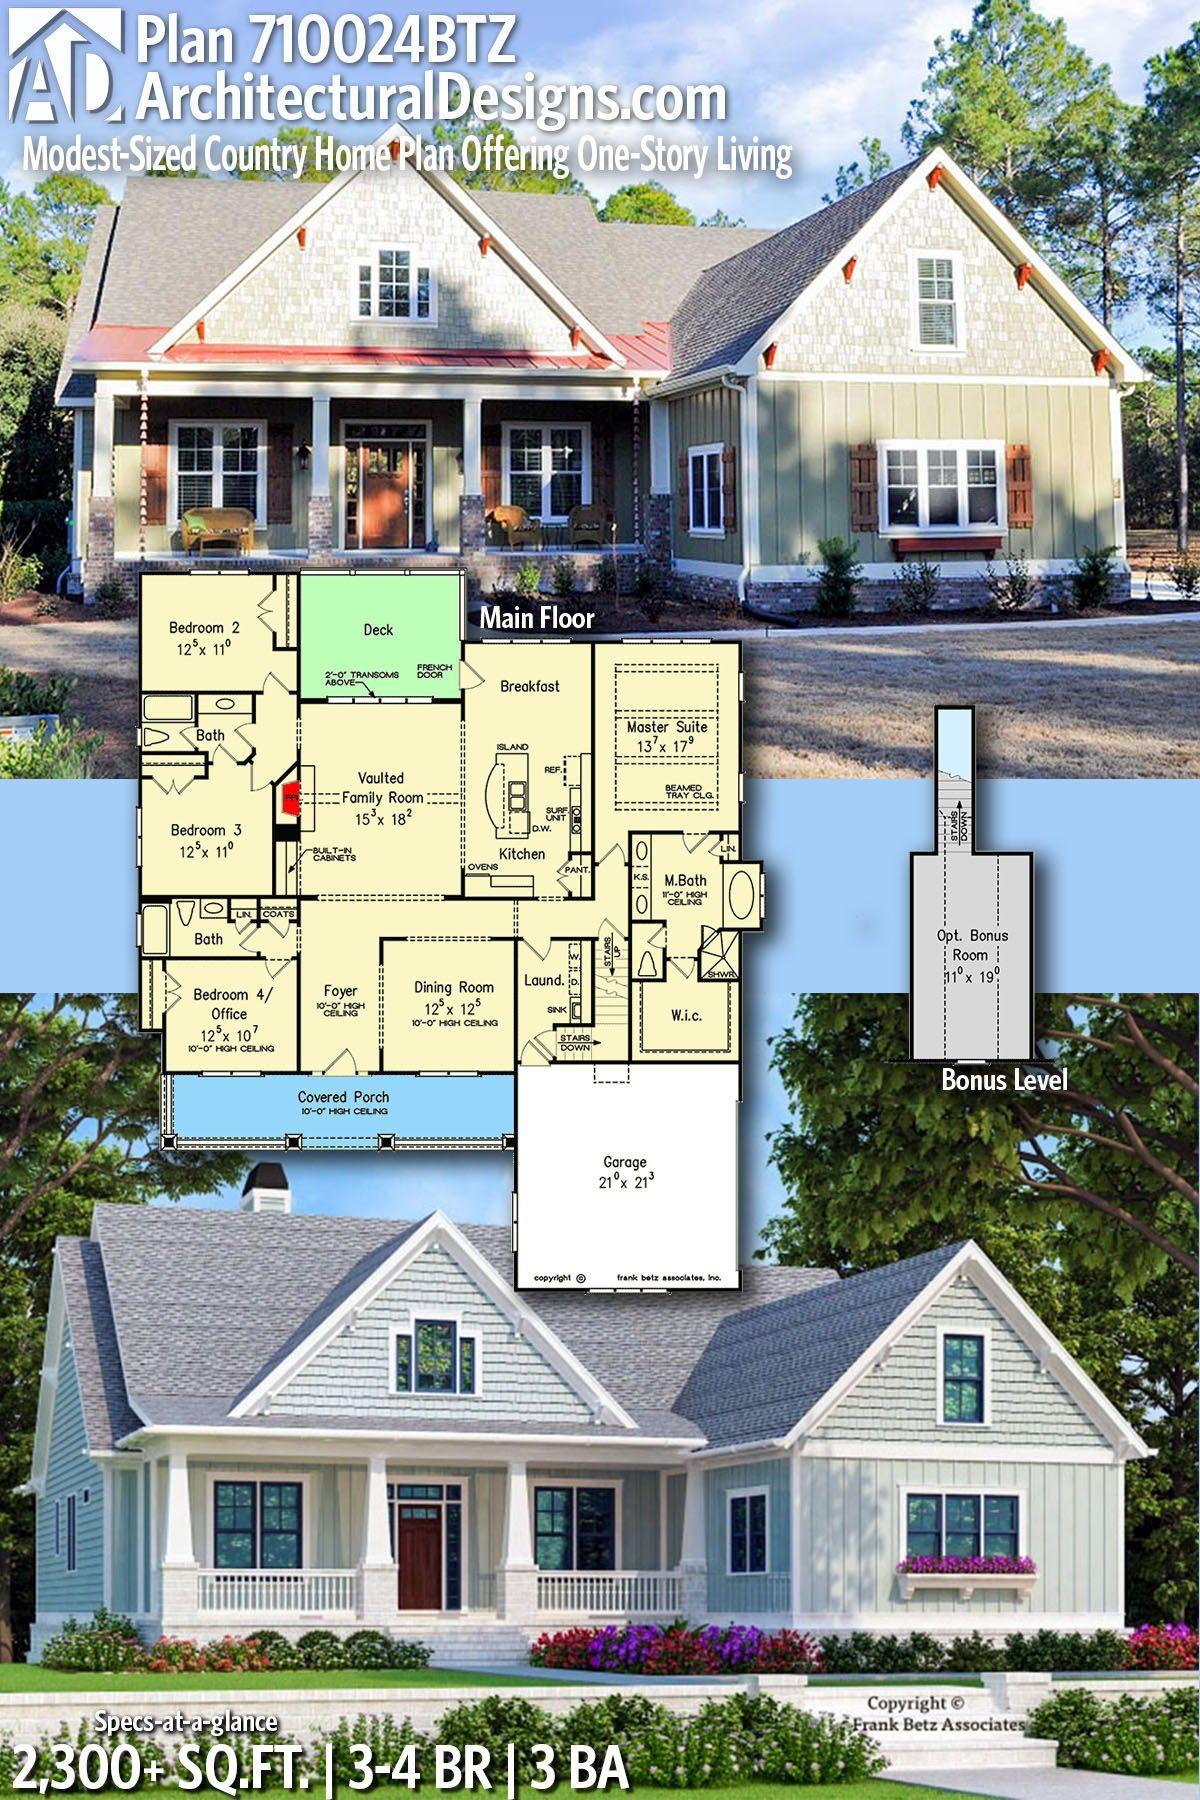 Plan 710024btz Modest Sized Country Home Plan Offering One Story